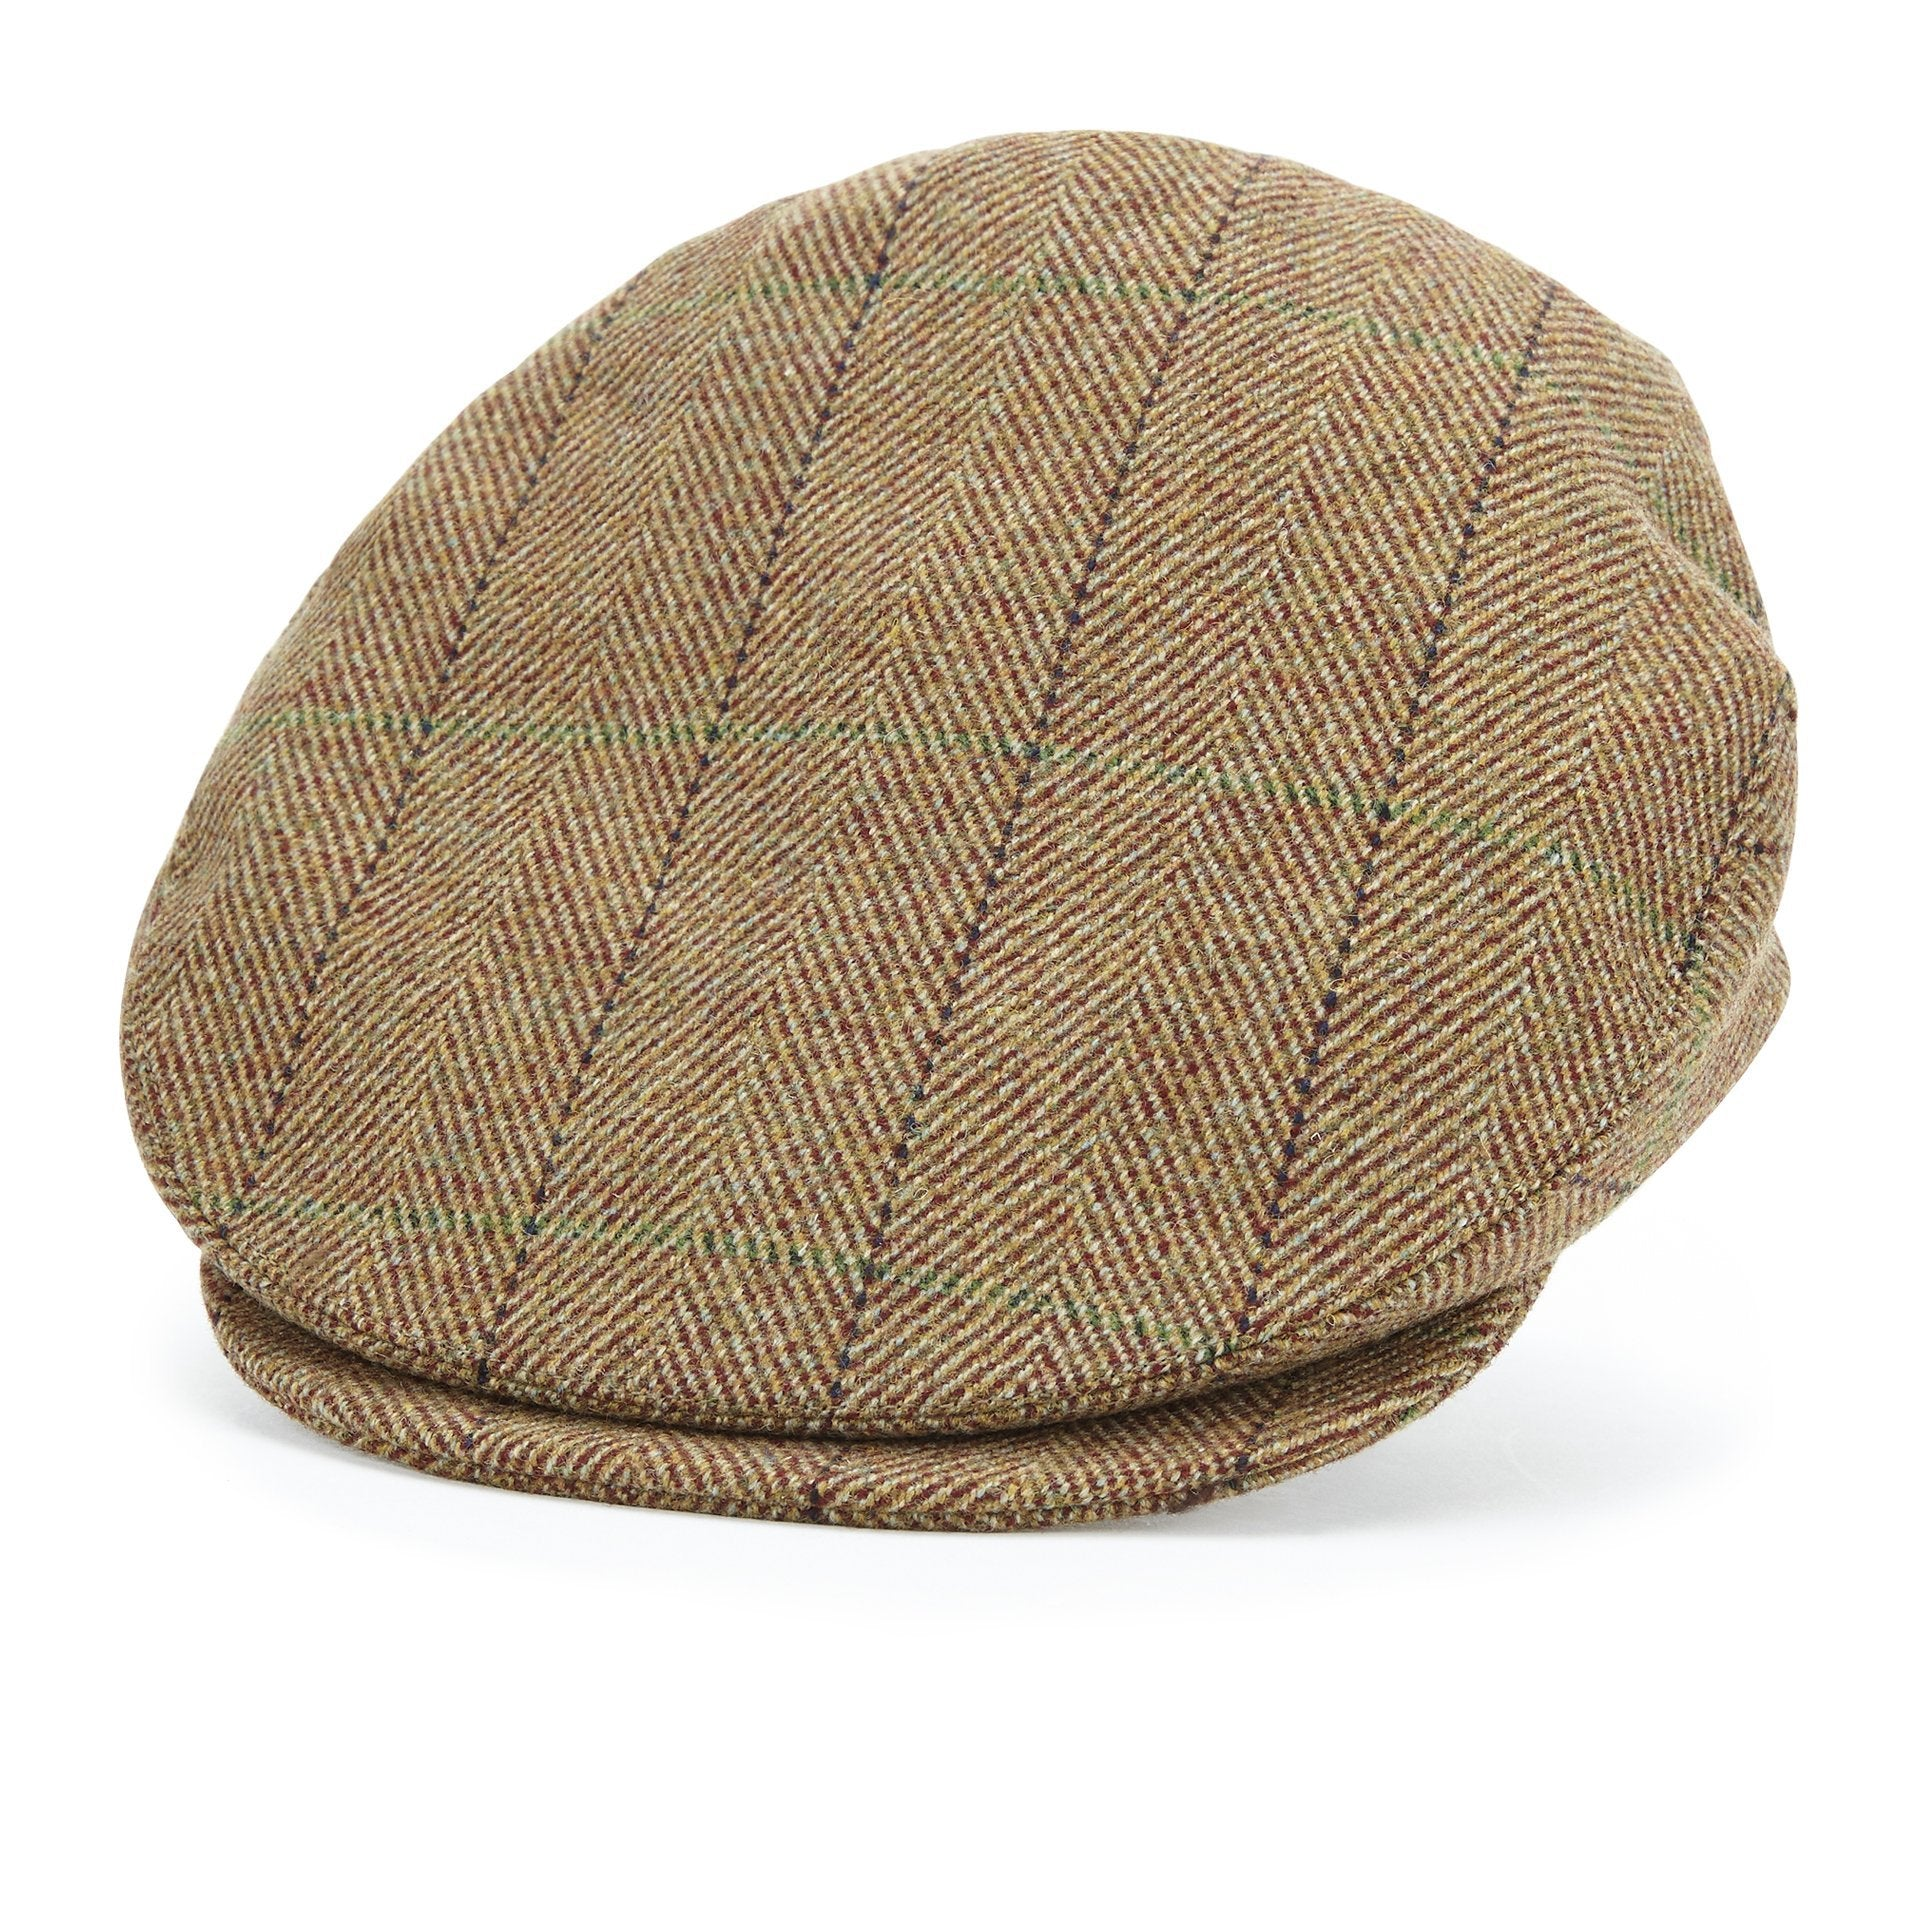 Turnberry tweed flat cap - Flat caps - Lock & Co. Hatters London UK